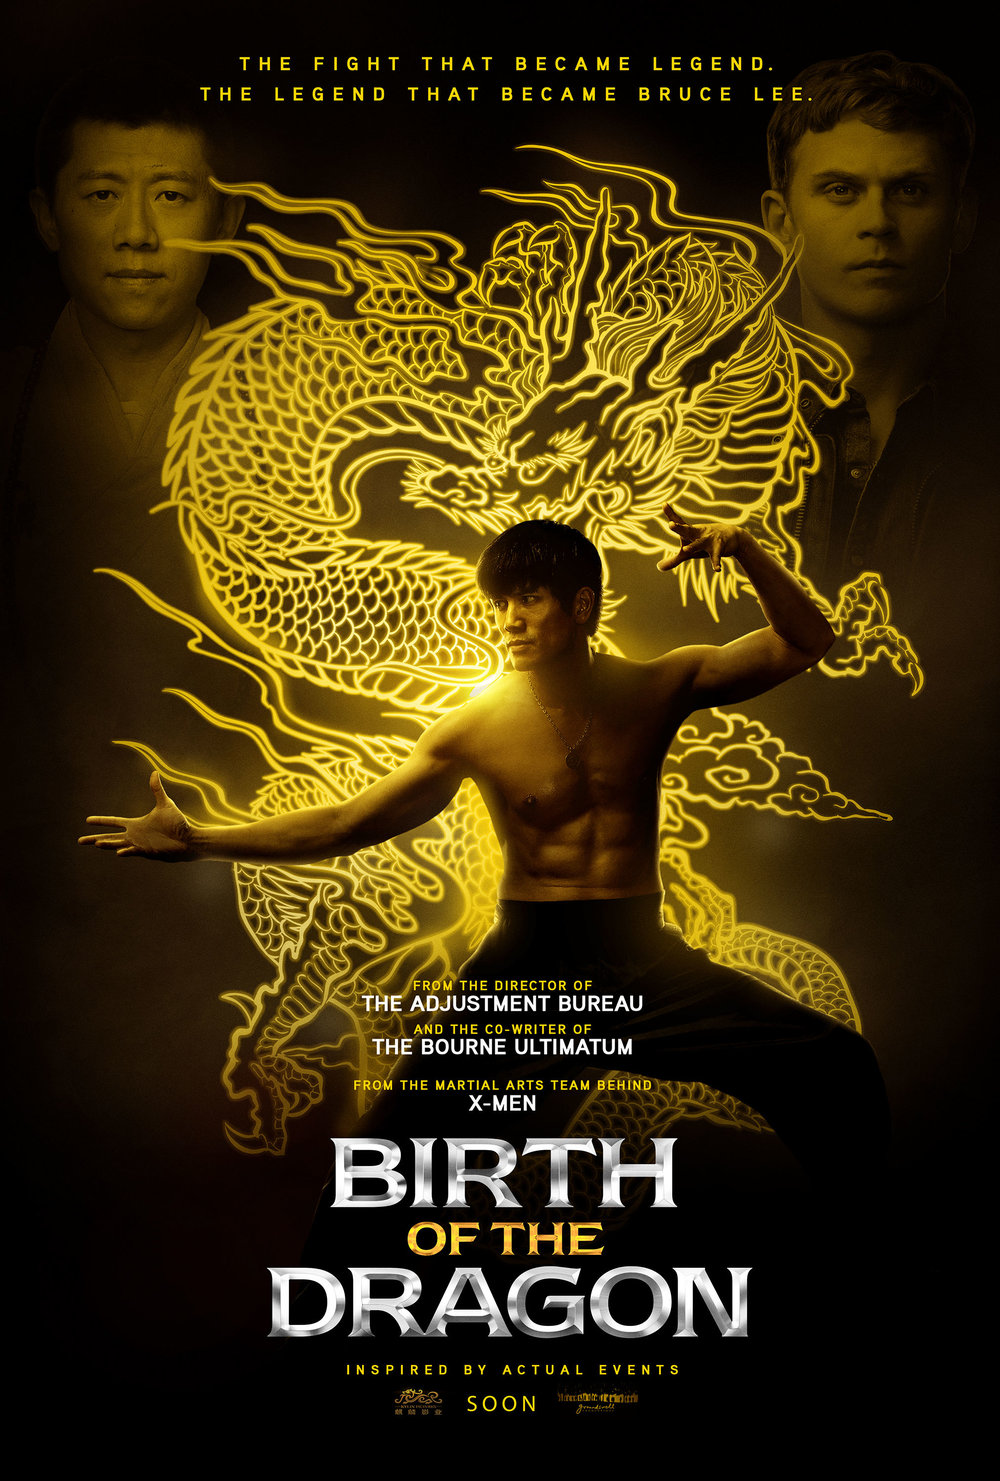 birth-of-the-dragon_poster_goldposter_com_1.jpg